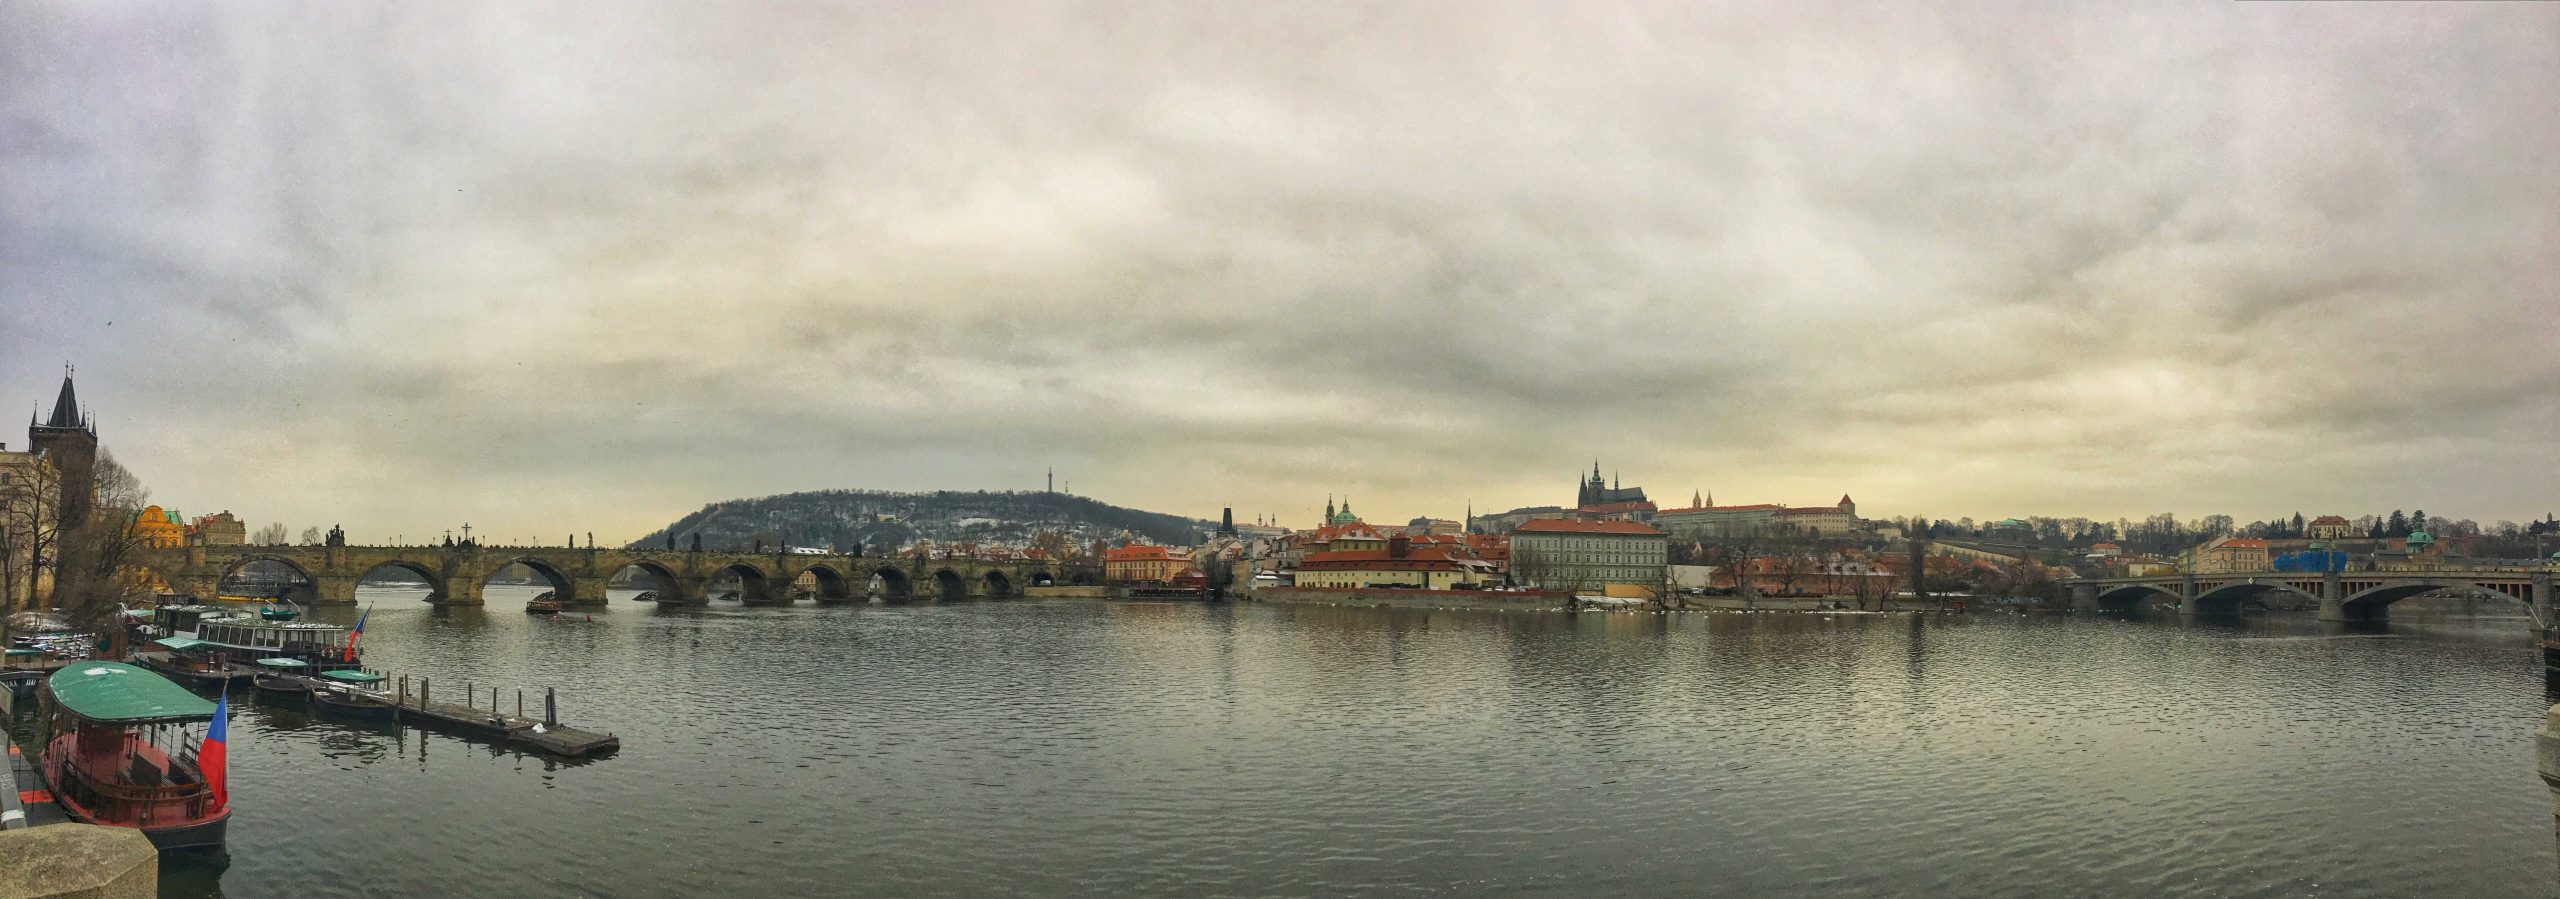 One day in Magical Prague